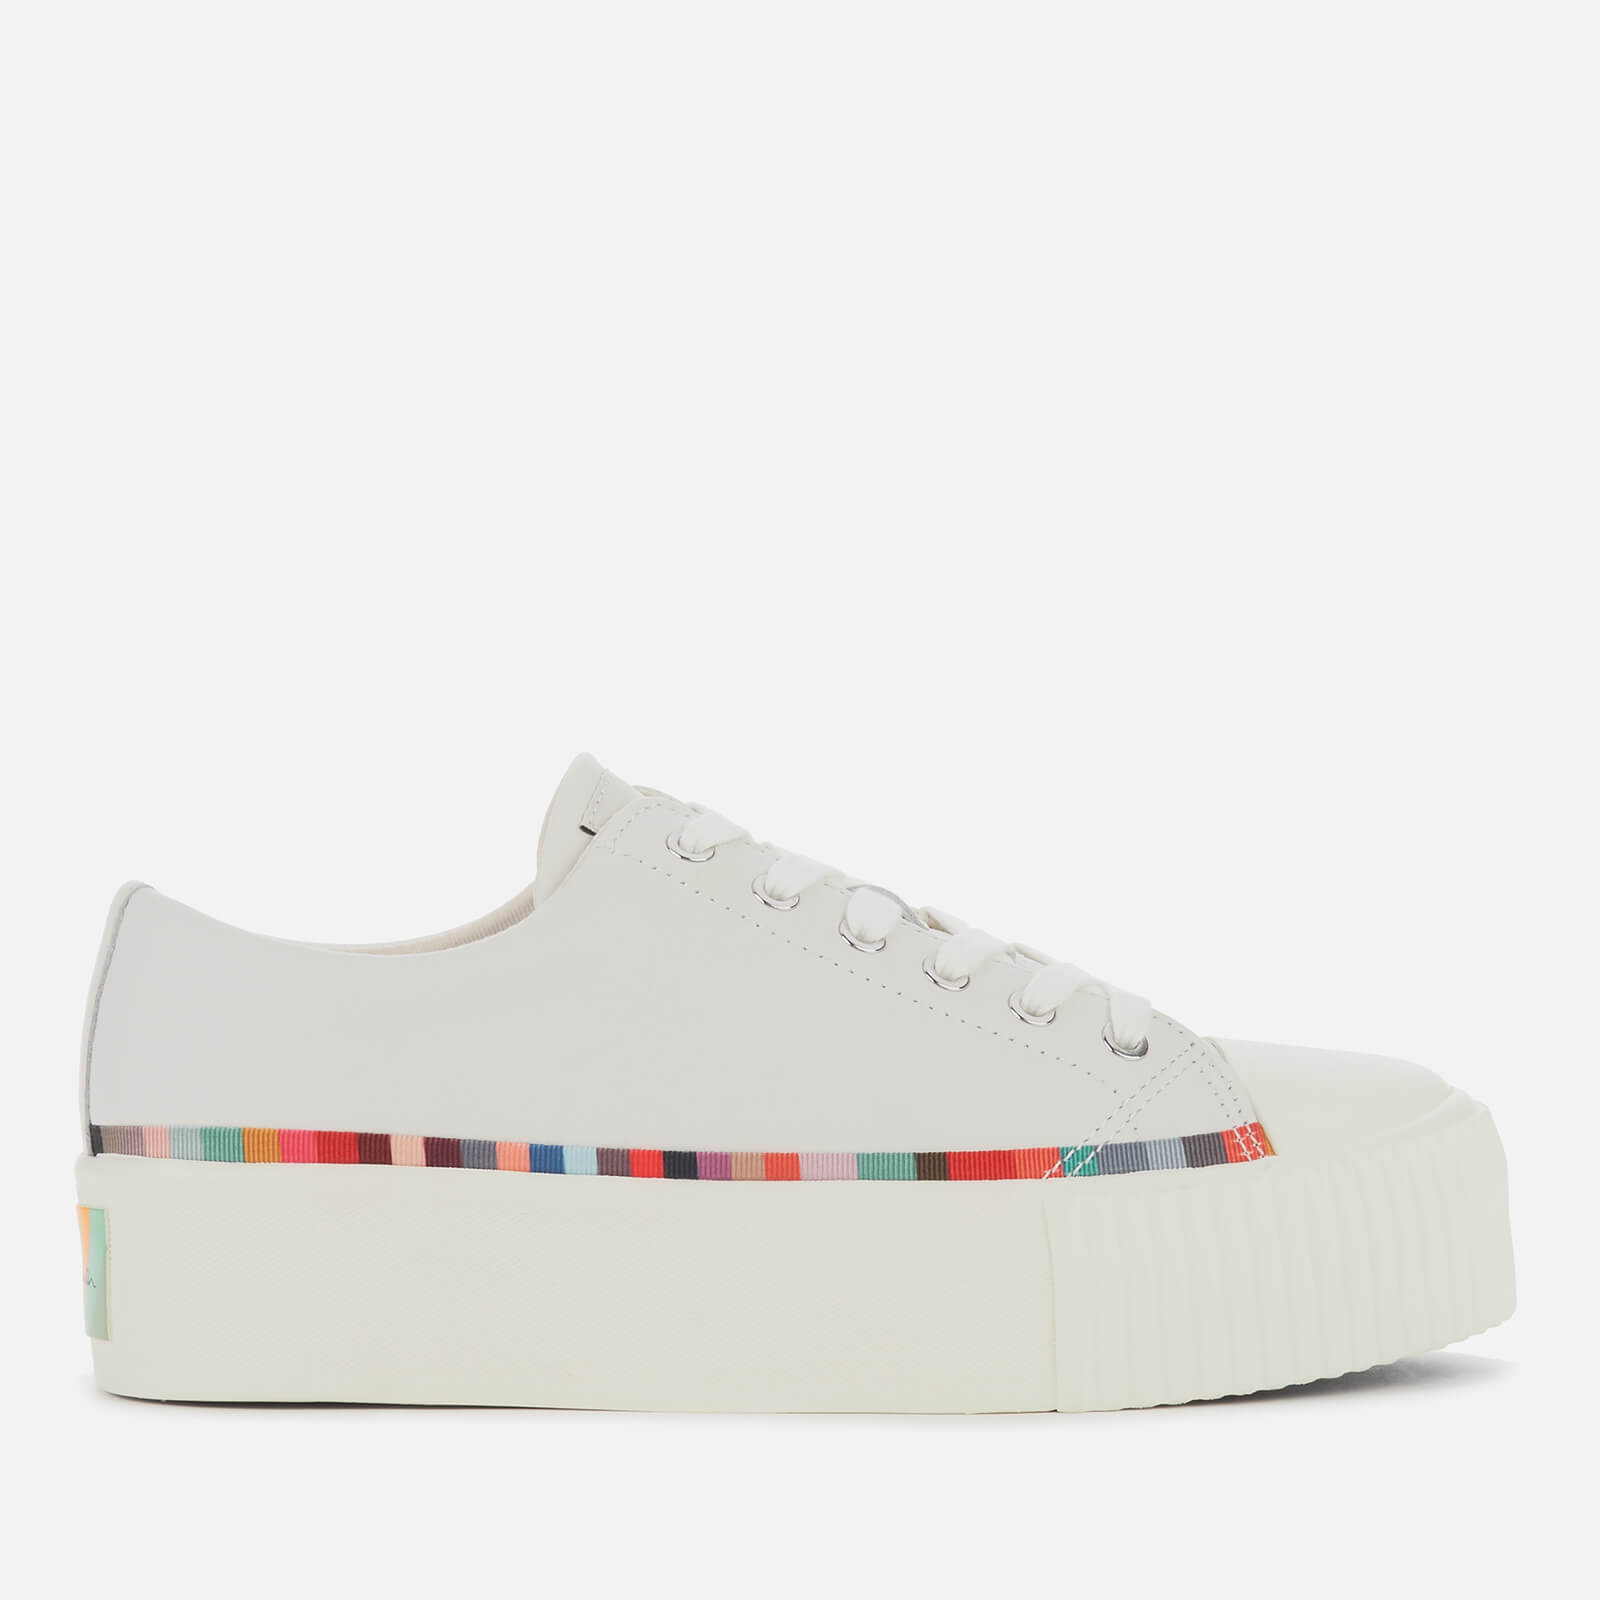 Womens metallic silver trainers plimsolls with white trim in sizes 4 to 8 uk